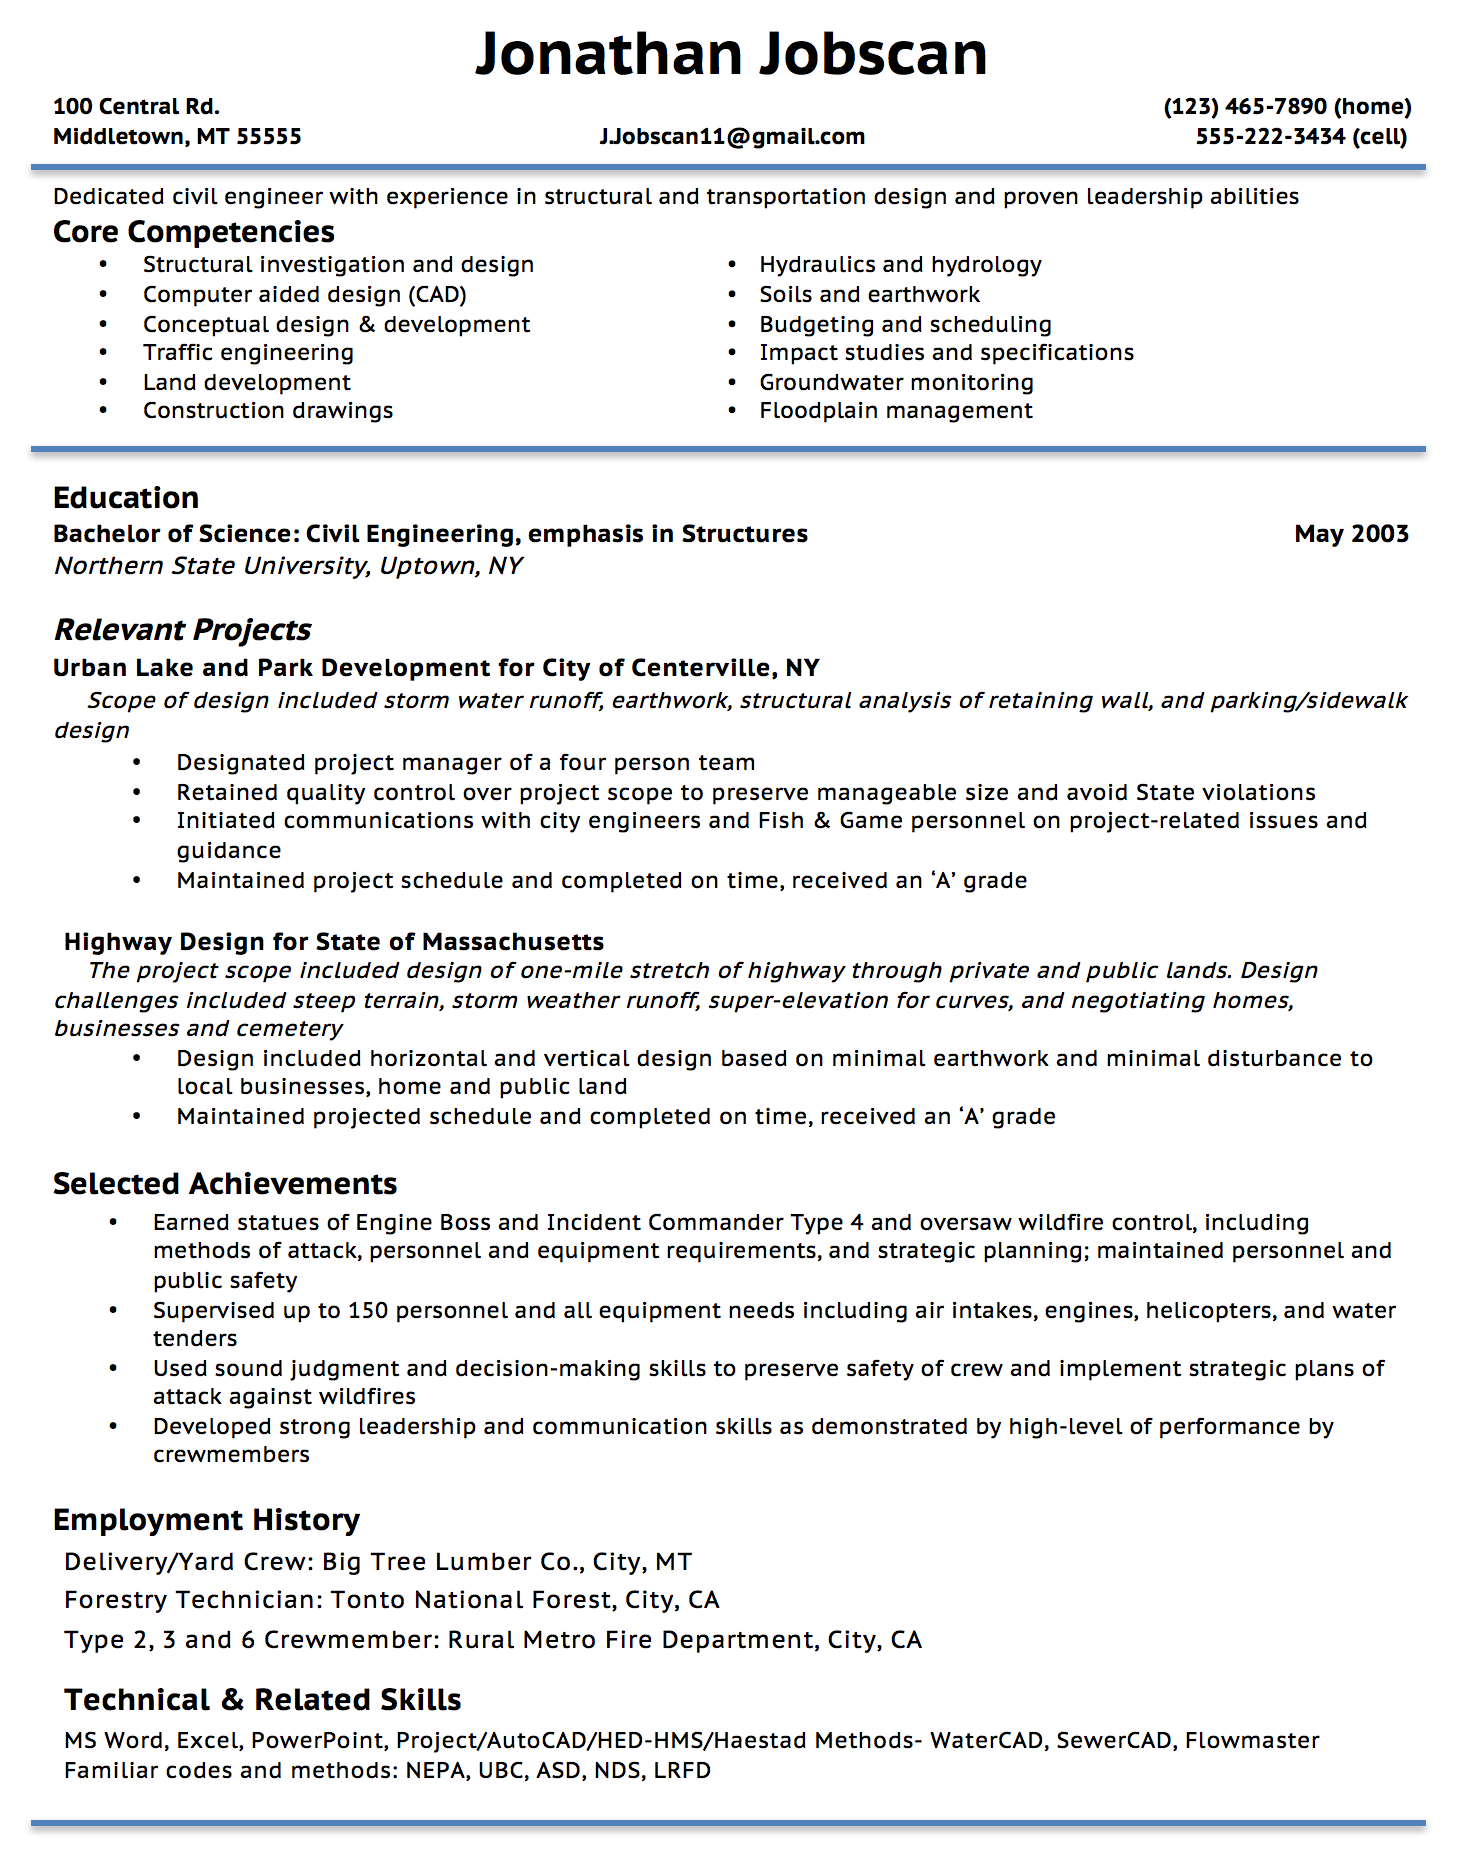 Opposenewapstandardsus  Surprising Resume Writing Guide  Jobscan With Magnificent Example Of A Functional Resume Format With Cute Deckhand Resume Also Good Descriptive Words For Resume In Addition Resume For College Admission And Adjectives To Use In A Resume As Well As Fashion Model Resume Additionally Food Service Director Resume From Jobscanco With Opposenewapstandardsus  Magnificent Resume Writing Guide  Jobscan With Cute Example Of A Functional Resume Format And Surprising Deckhand Resume Also Good Descriptive Words For Resume In Addition Resume For College Admission From Jobscanco